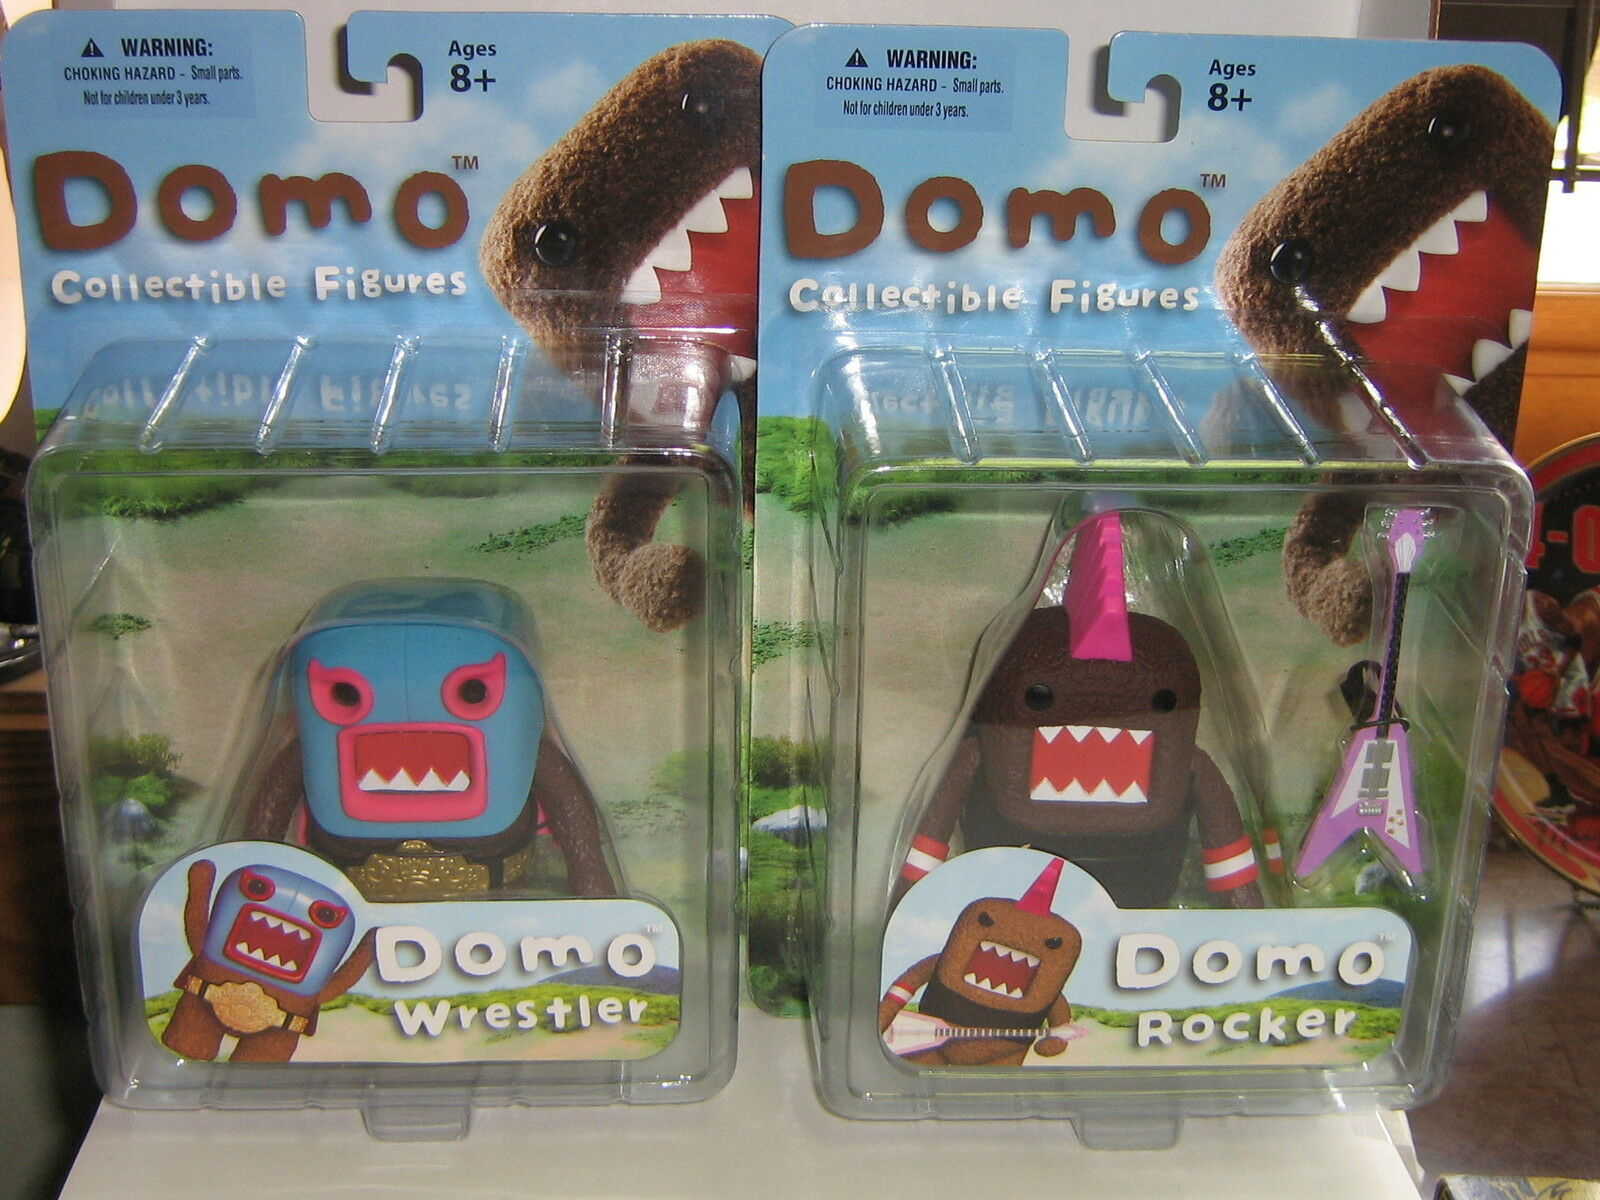 Case of 12 - Domo Anime Collectible Figures by Mezco - WRESTLER & ROCKER